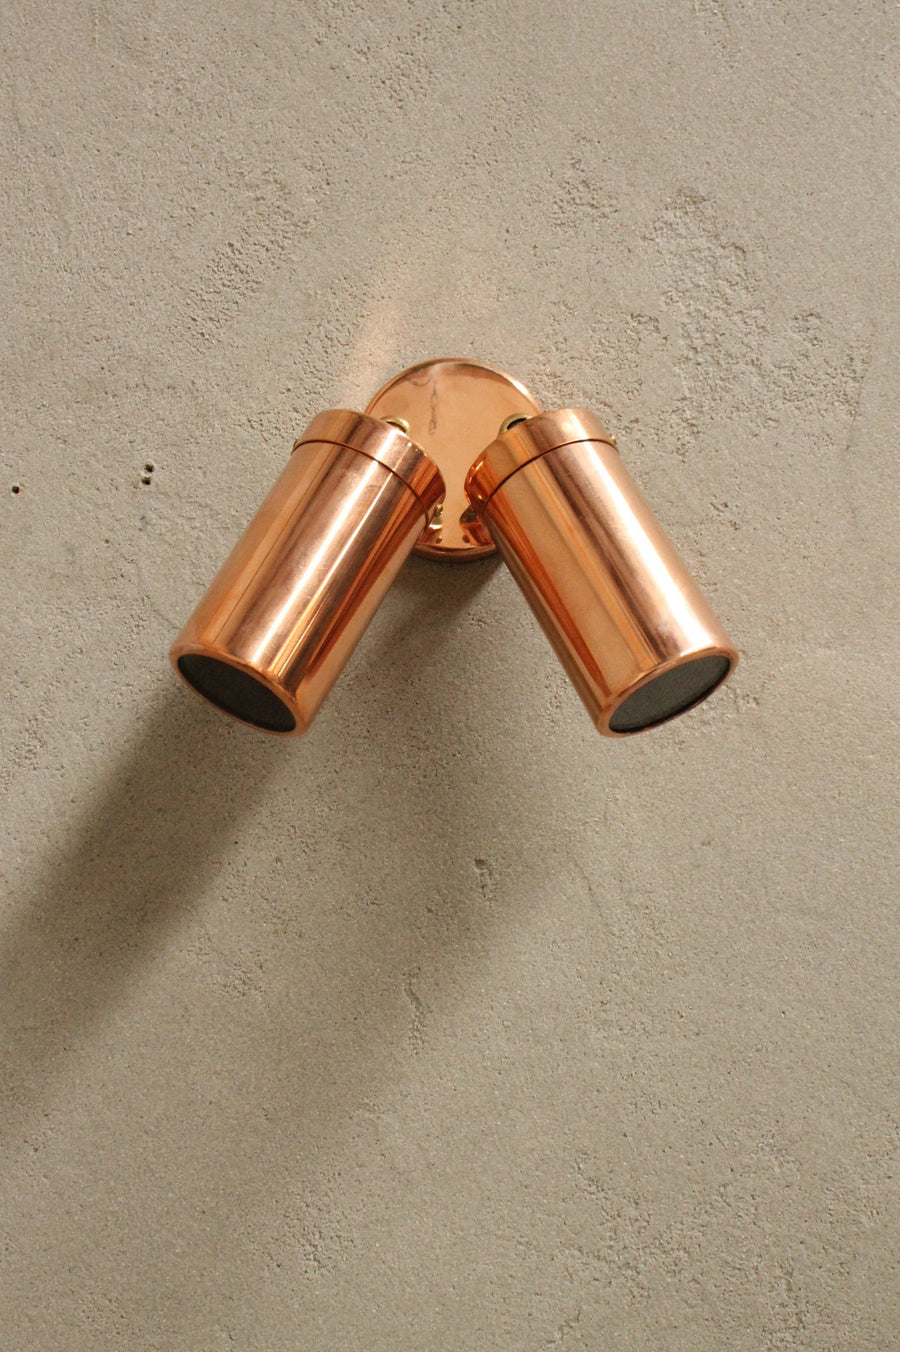 Copper Outdoor Twinlight Spotlight